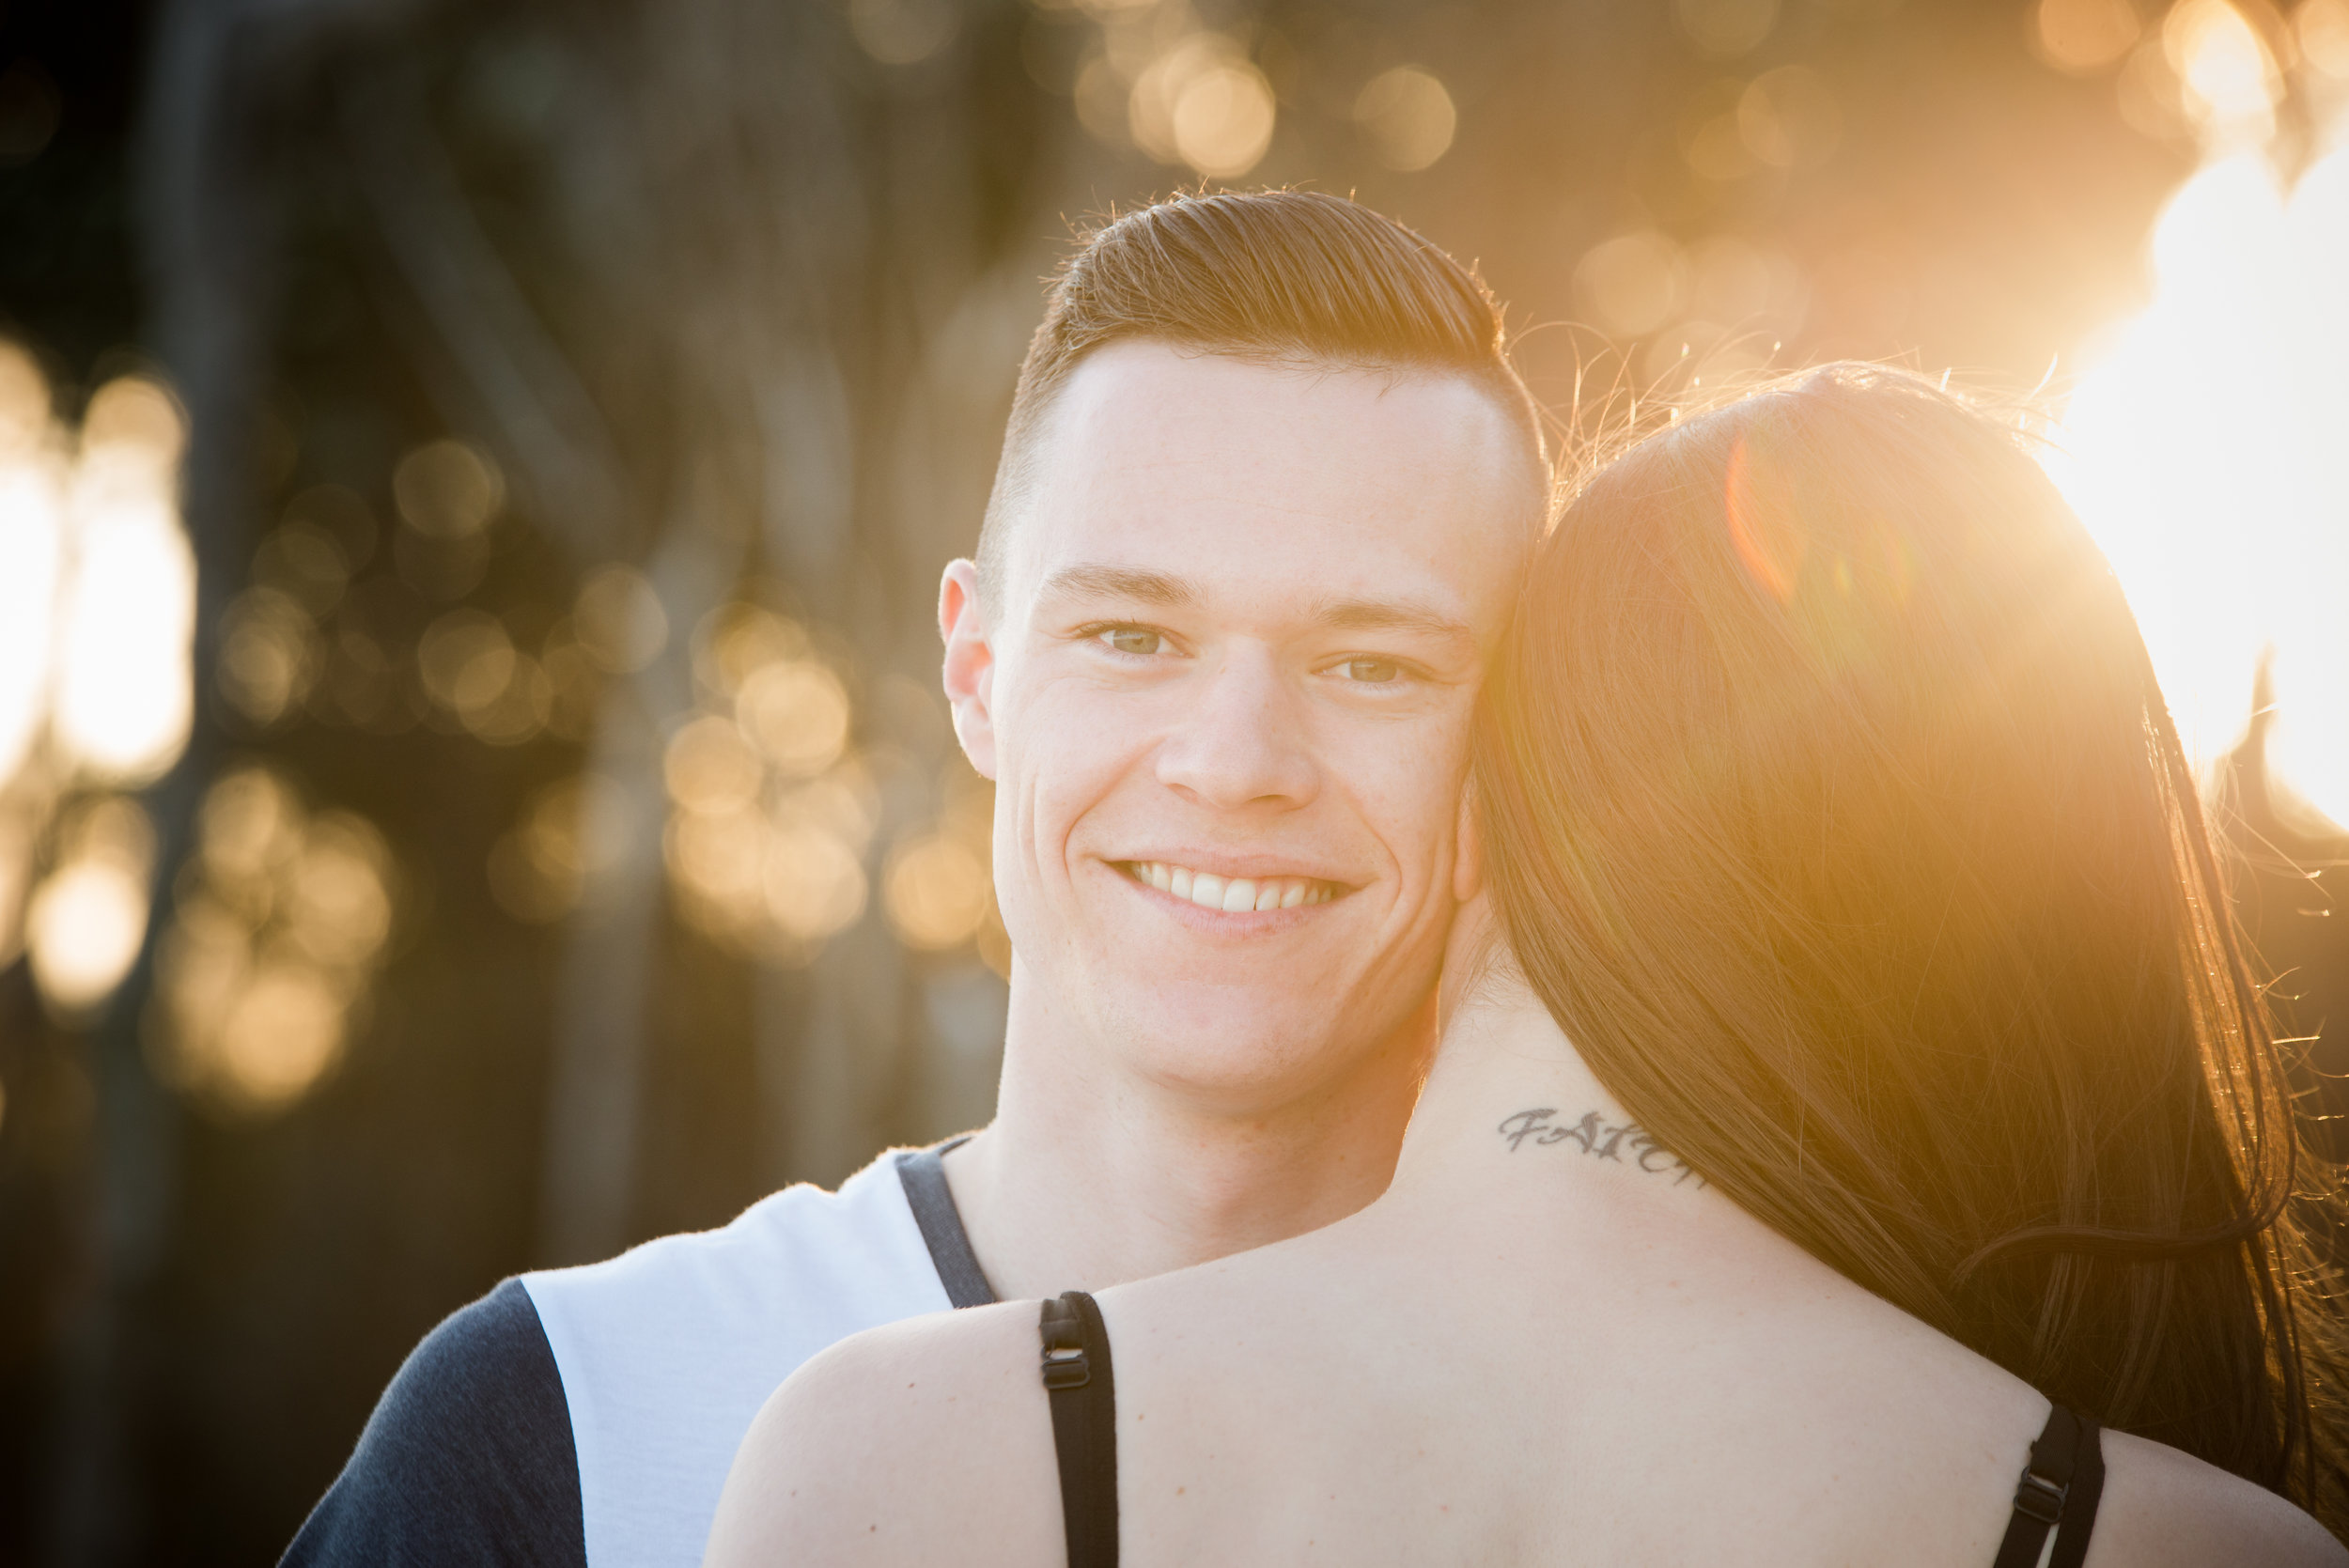 Young couple embrace with golden light filtering in behind